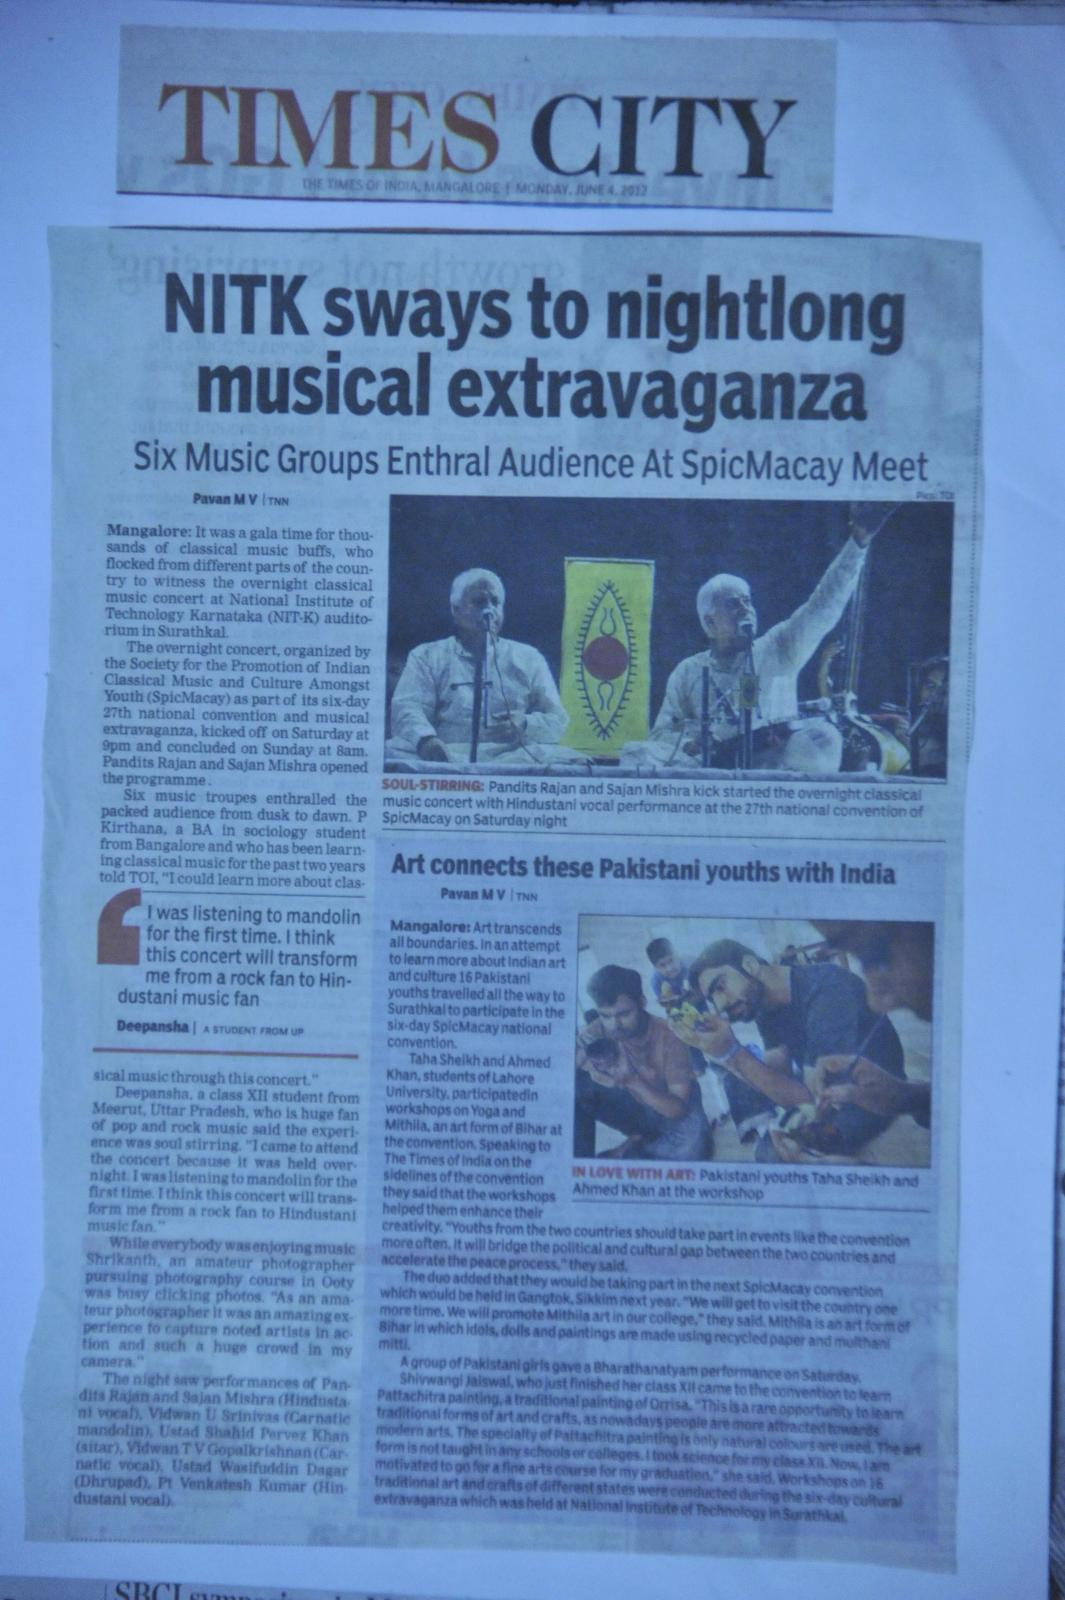 NITK sways to nightlong musical extravaganza?!